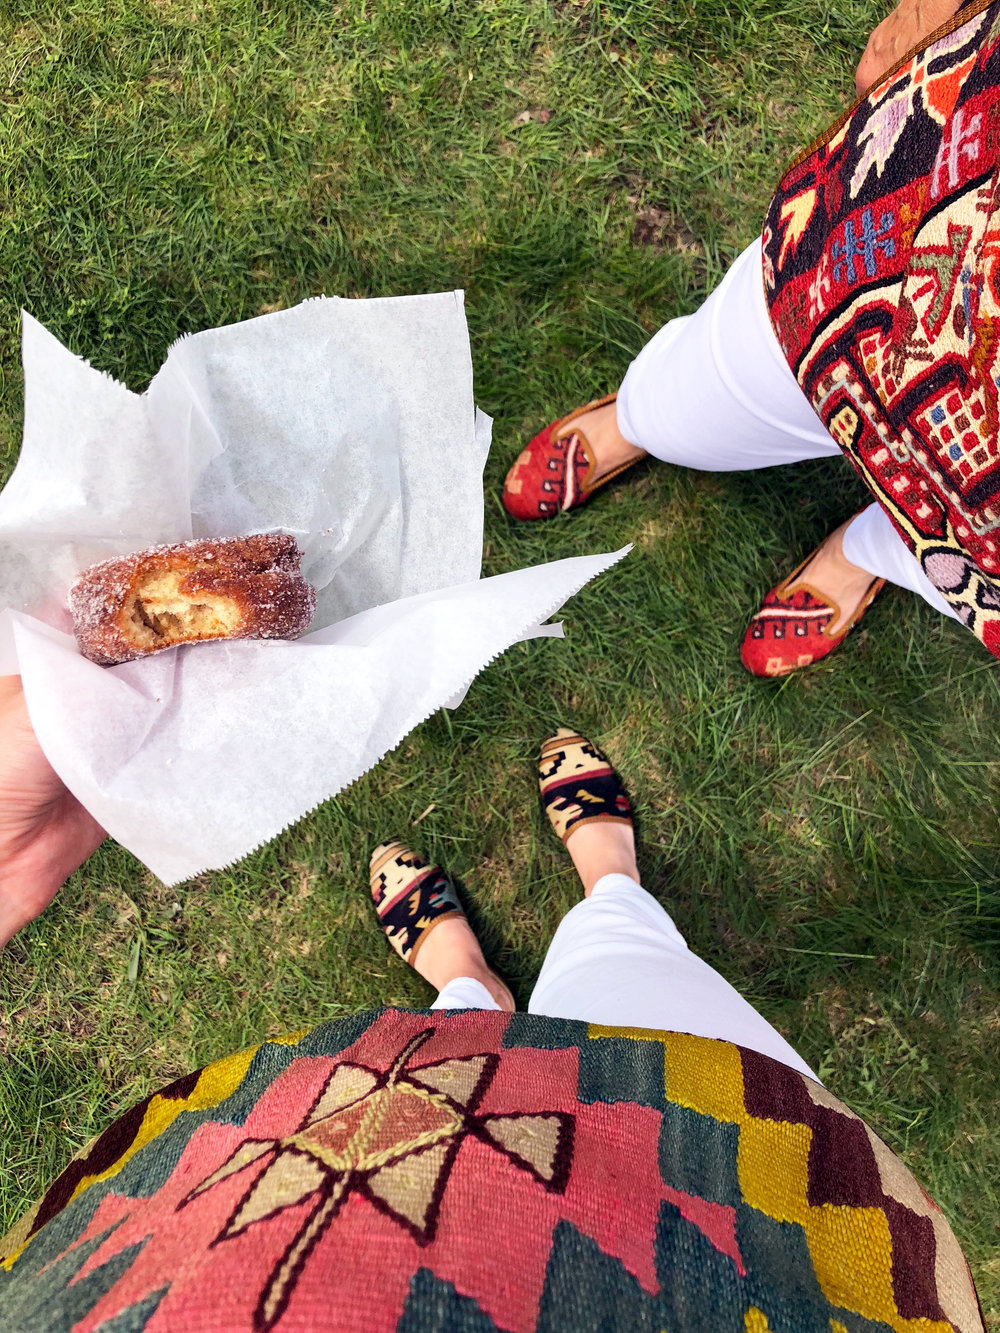 Eating donuts in Kilim Shoes.